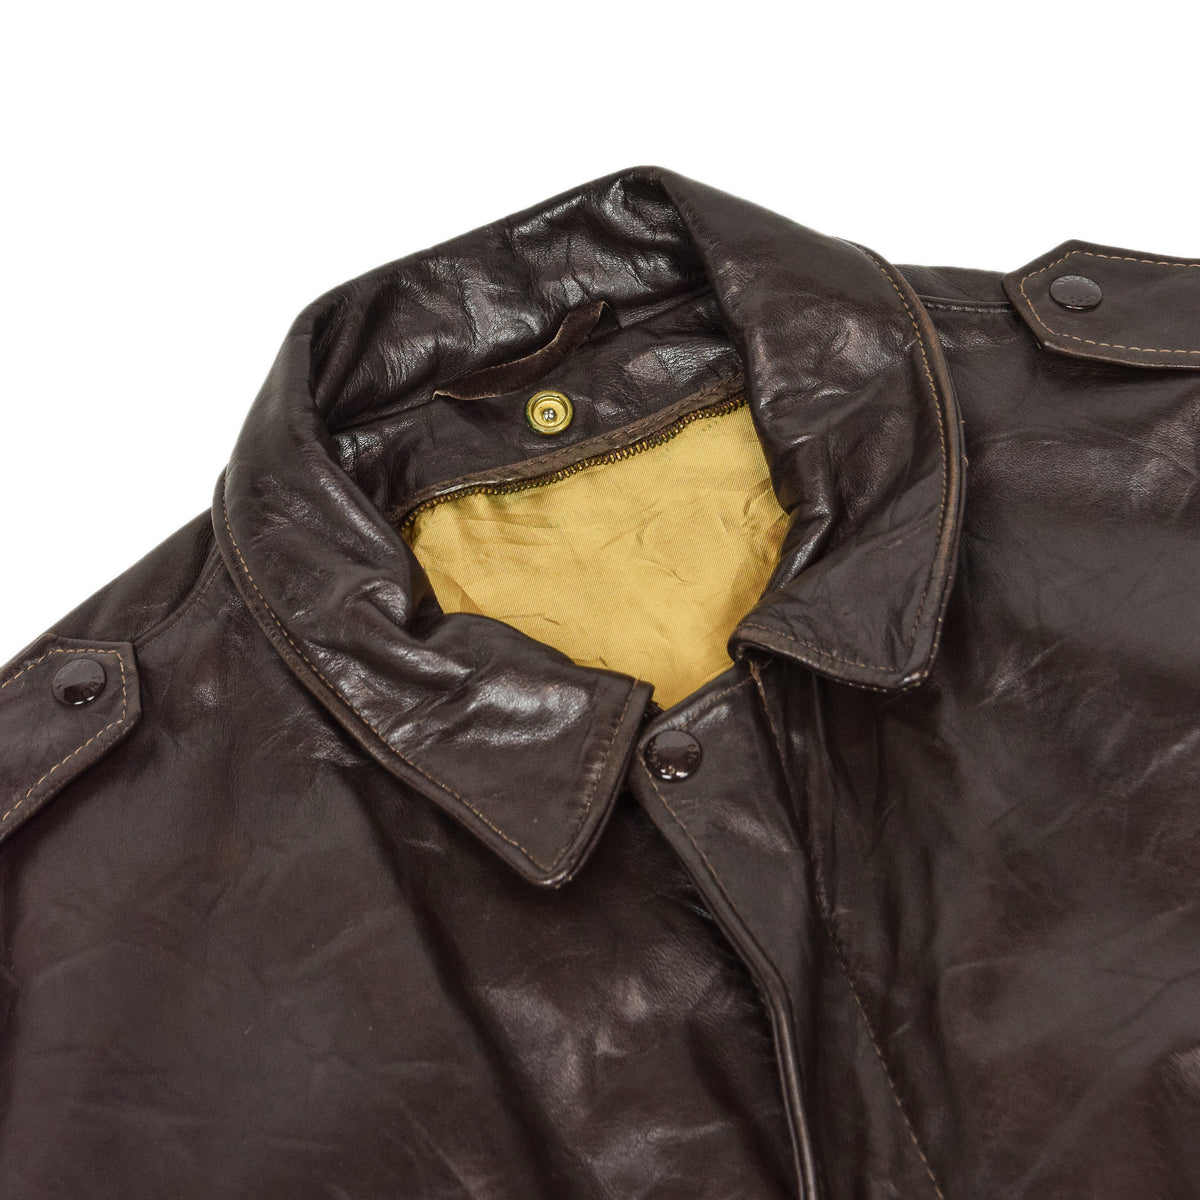 Vintage 80s A-2 Schott Brown Leather Flight Bomber Jacket Made in USA 48 XXL collar